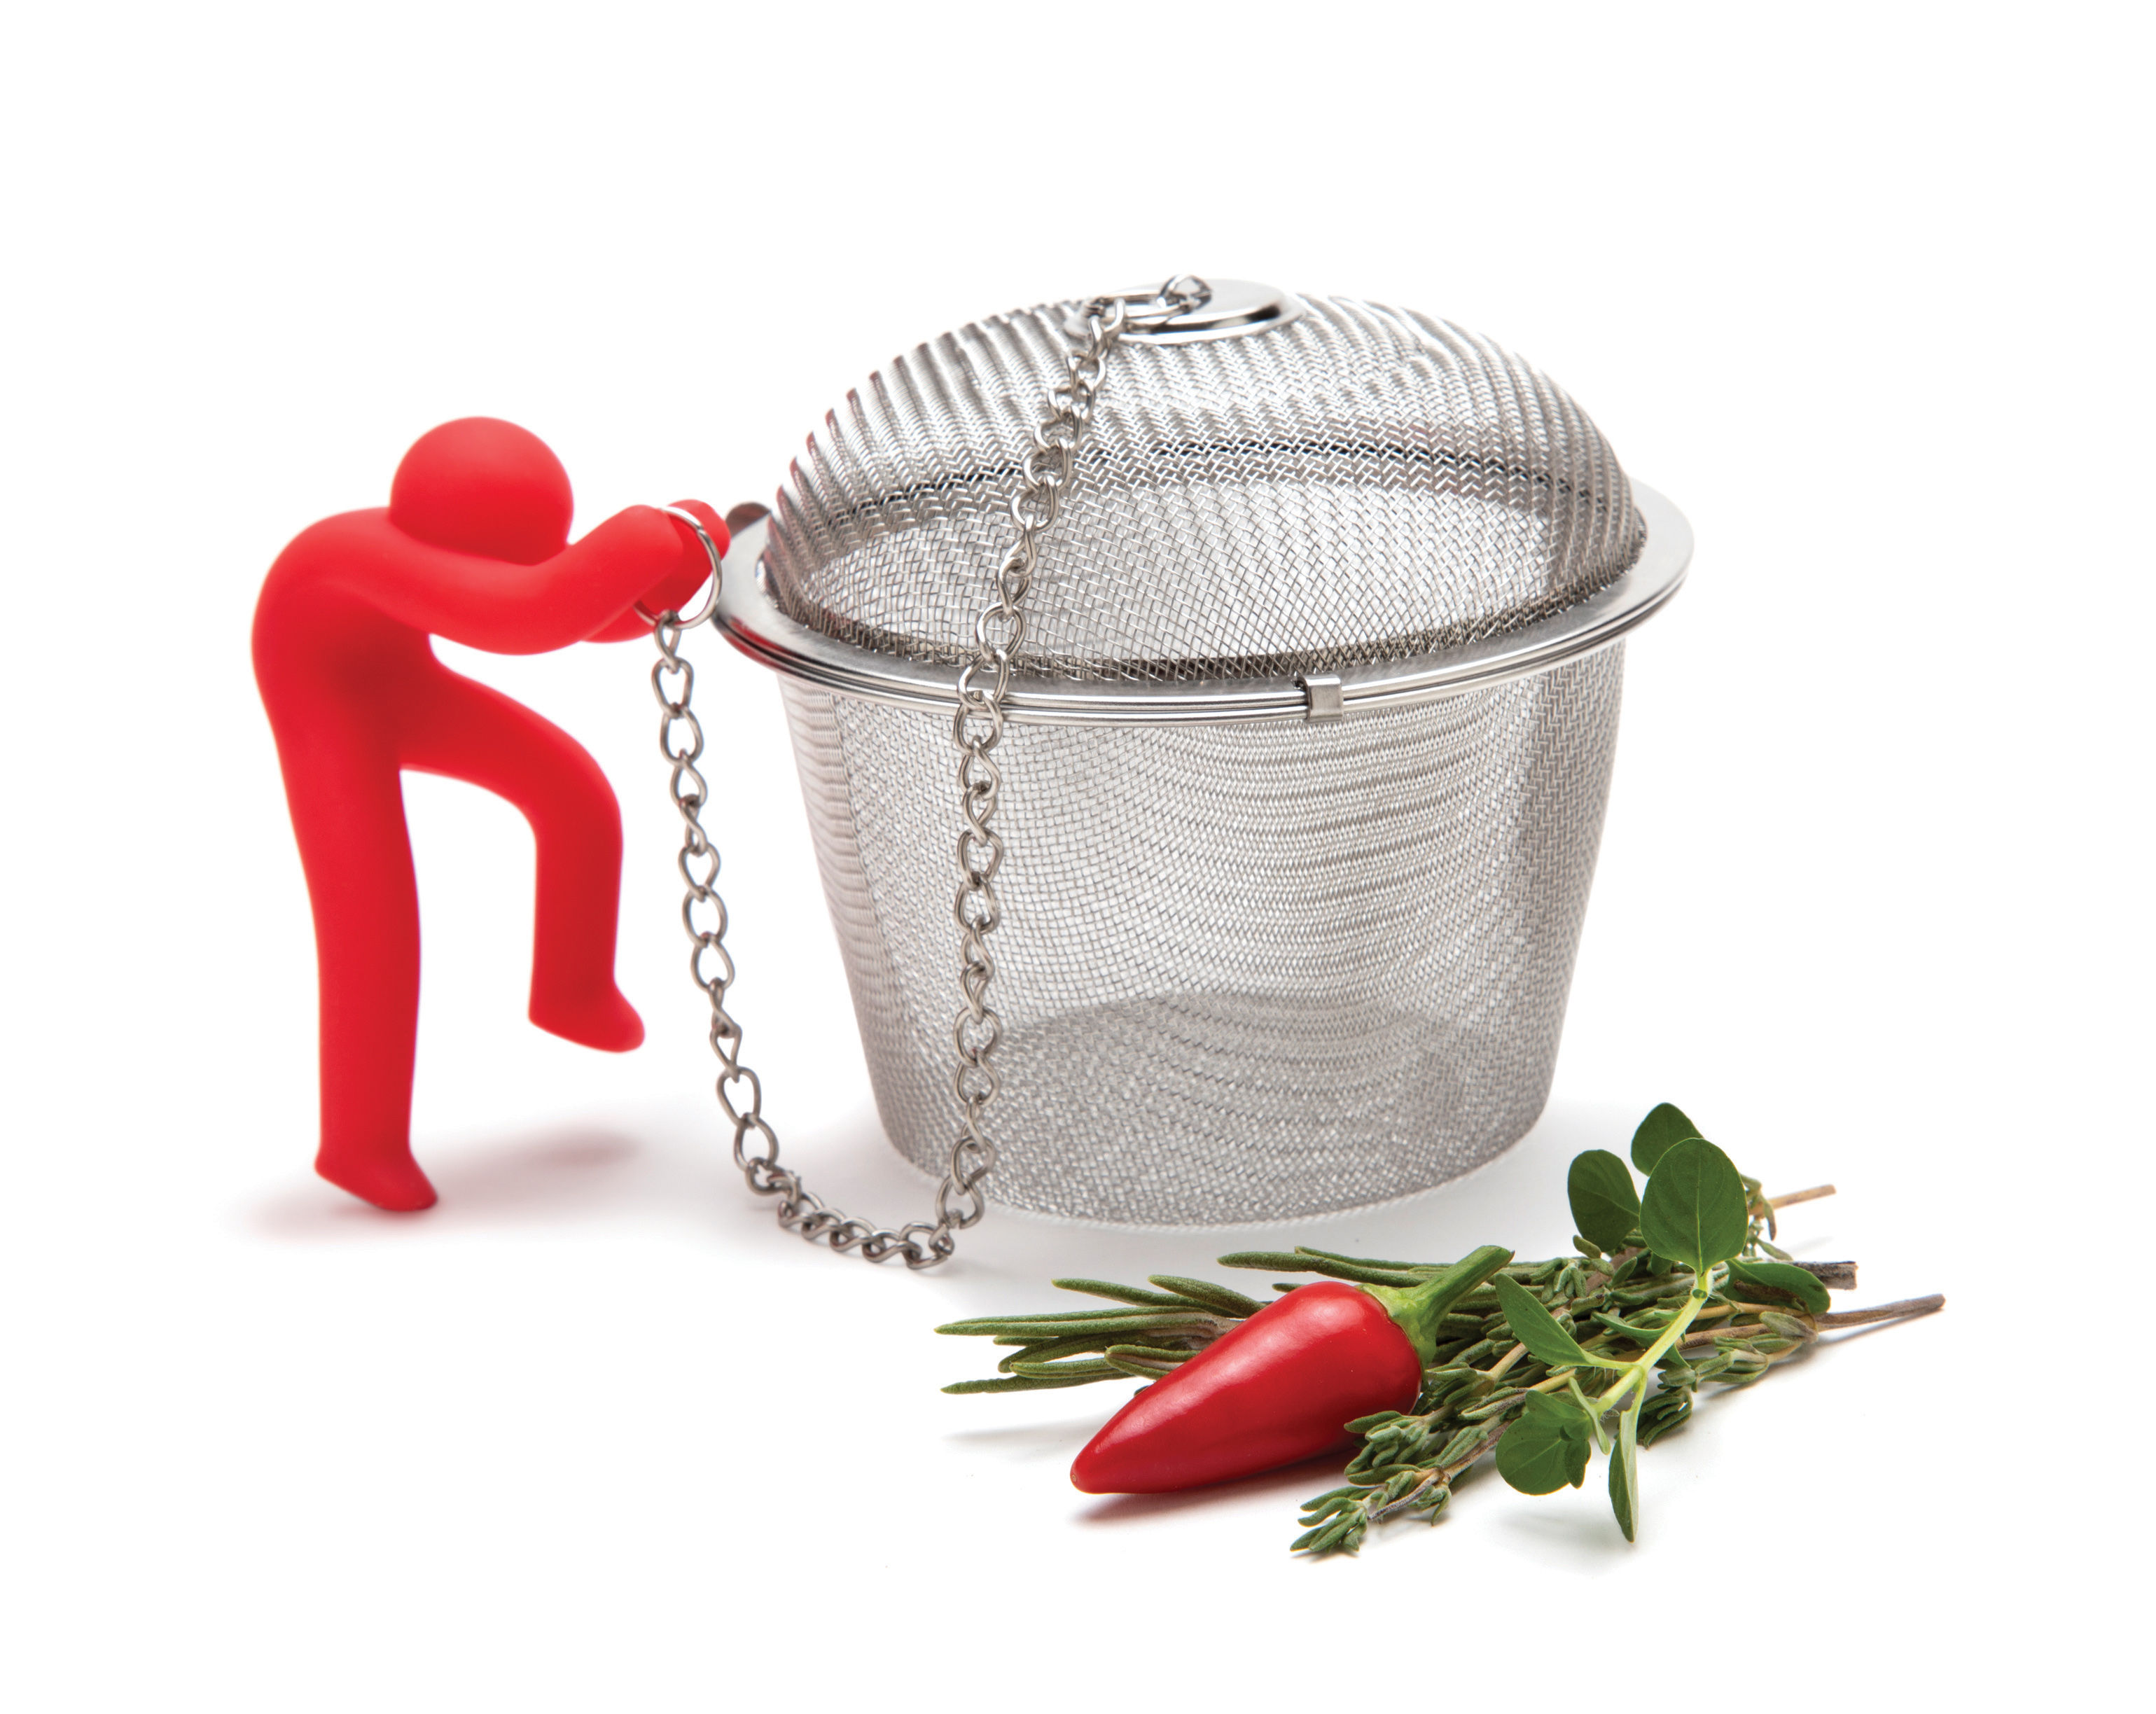 Kitchenware - Kitchen Equipment - Hike Mike Herbs infuser by Pa Design - Red - Silicone, Stainless steel